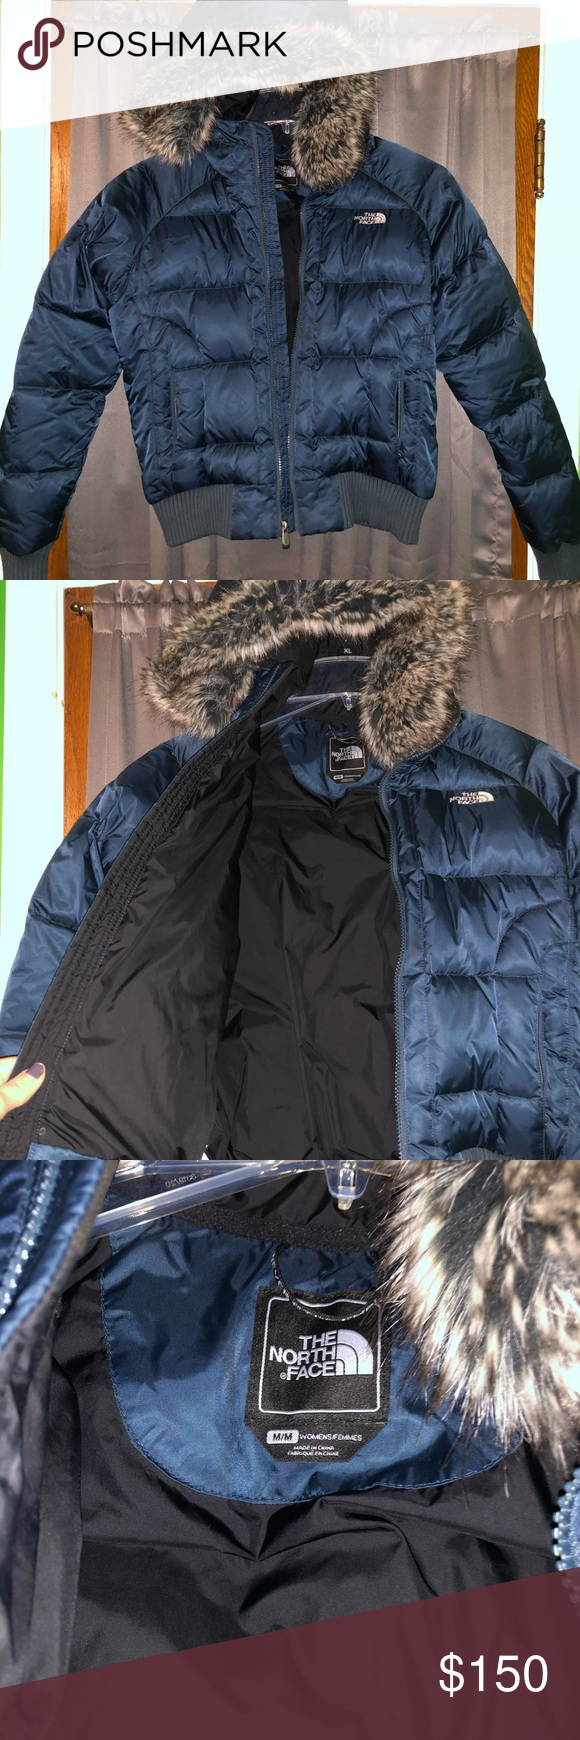 North face puffer jacket in 2020 North face puffer